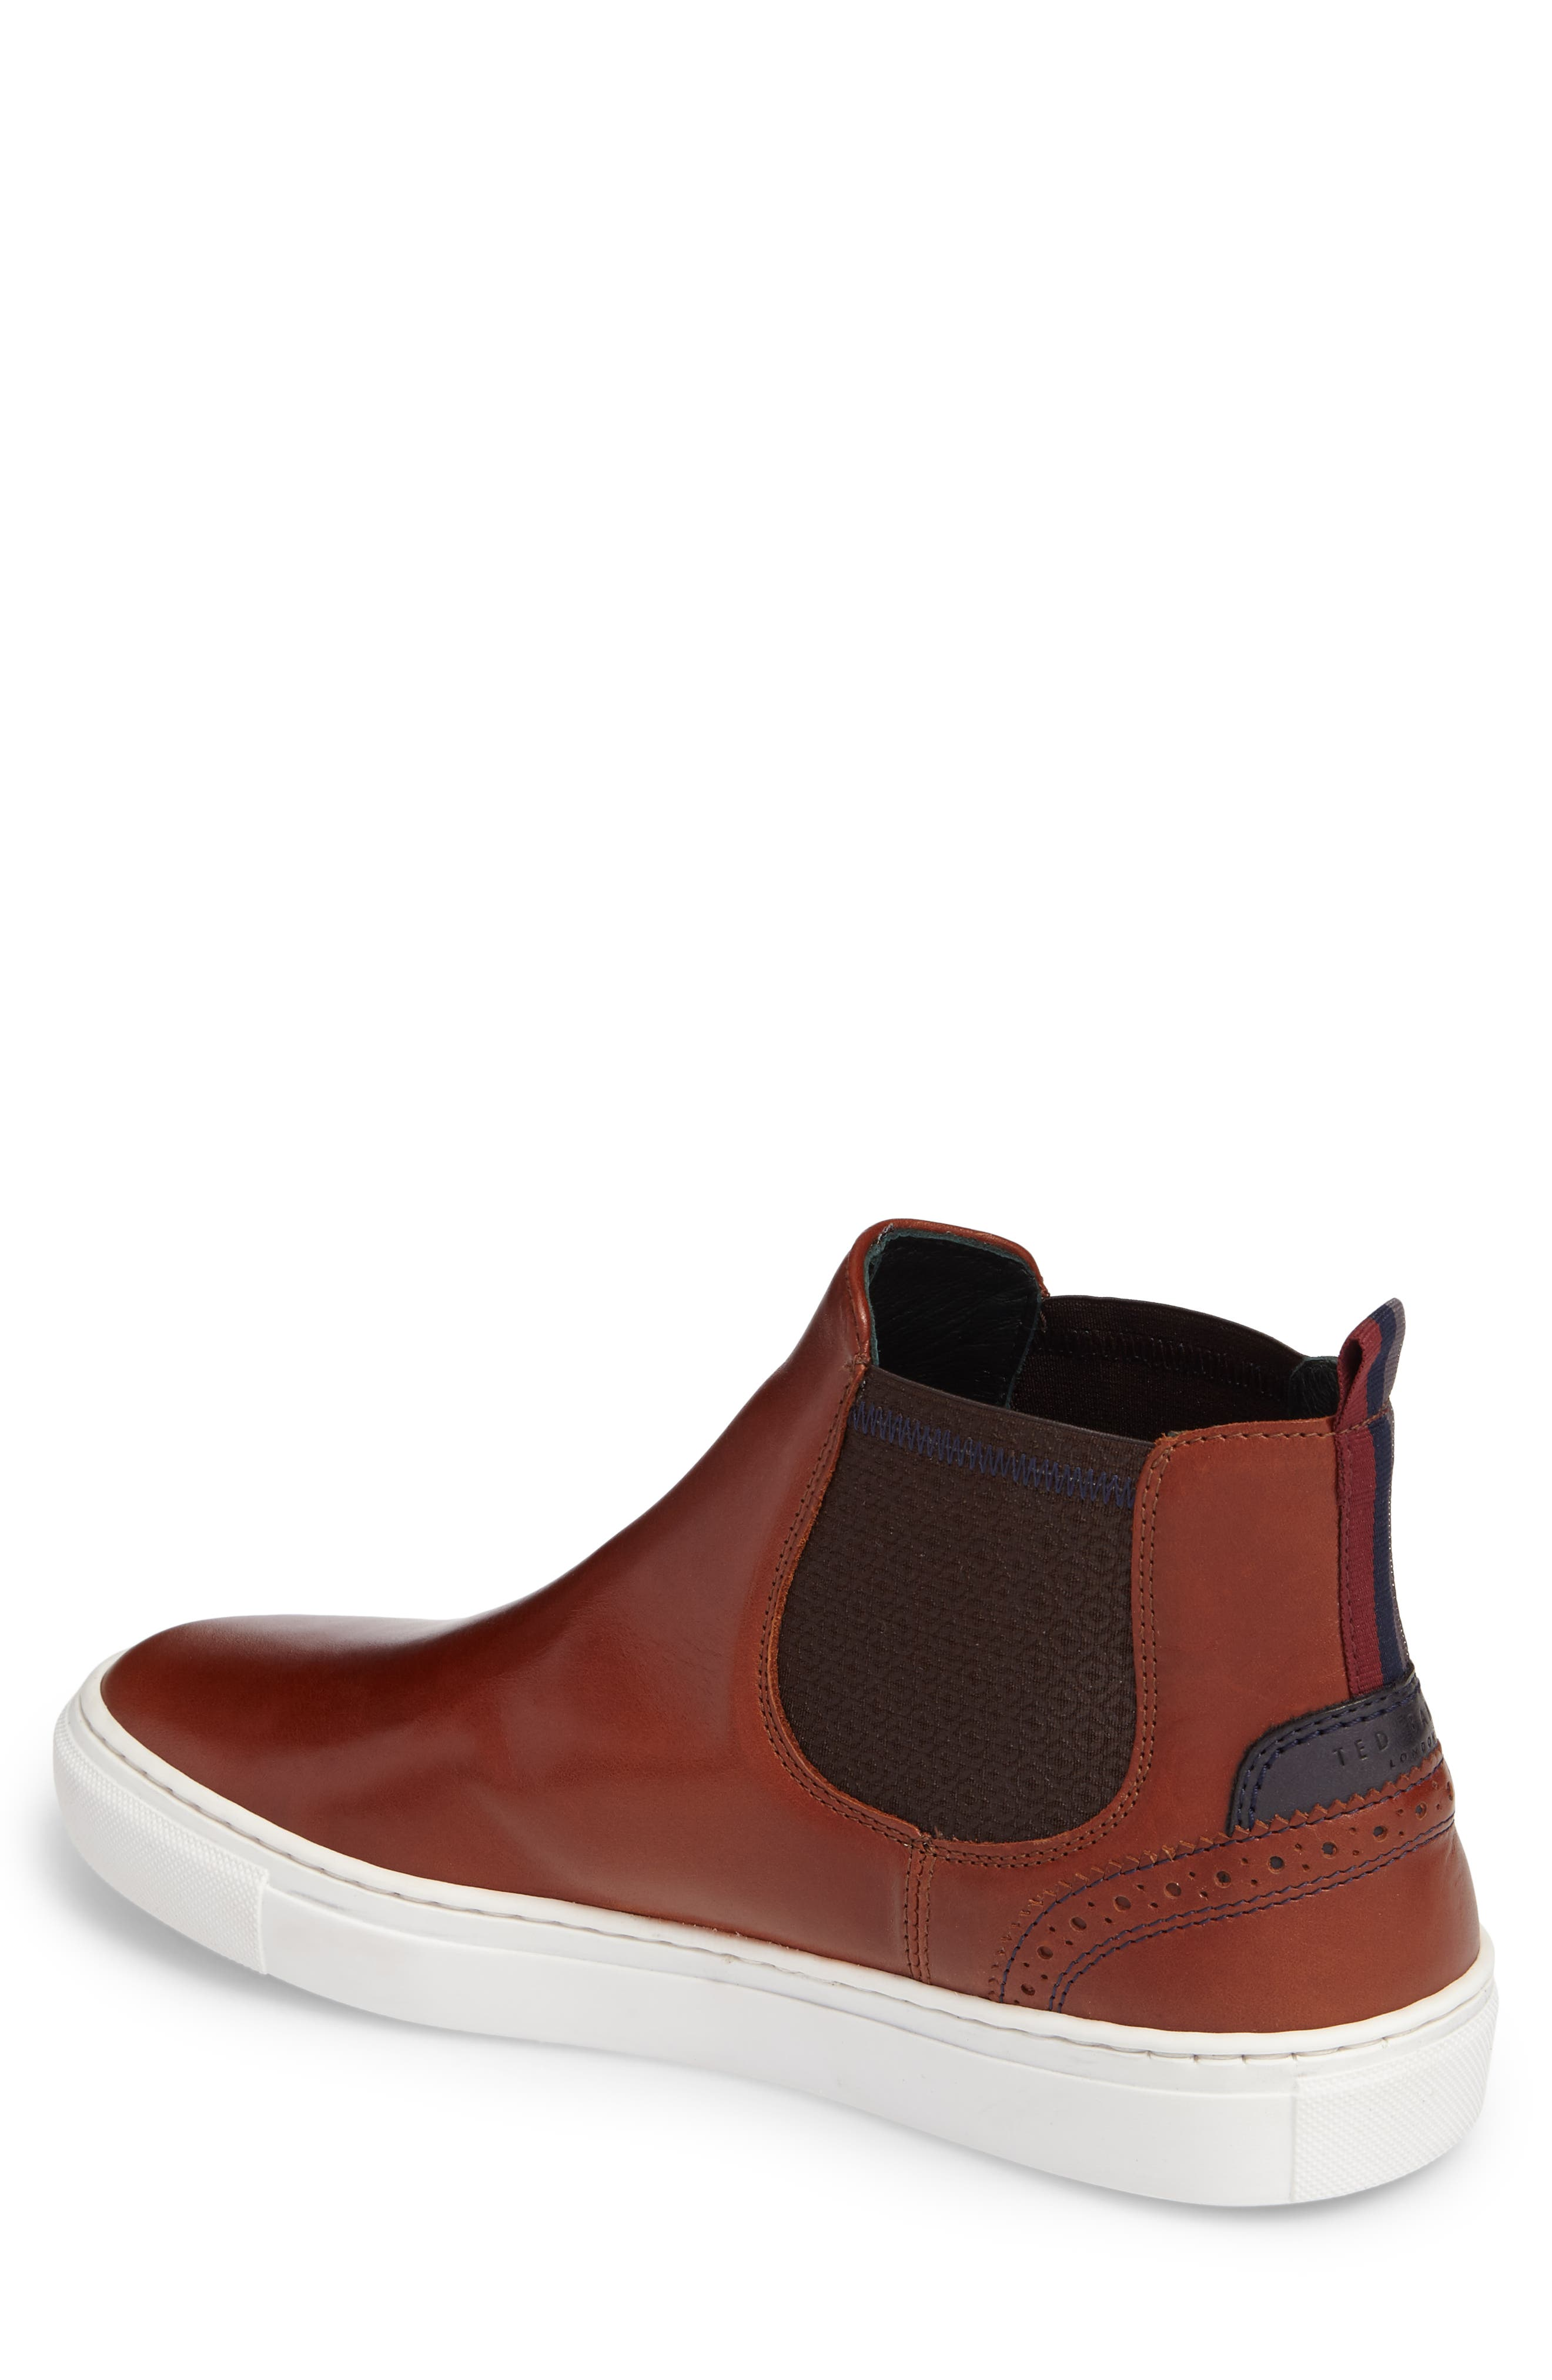 cole haan shoes 2018 trends forecast gerald 702472